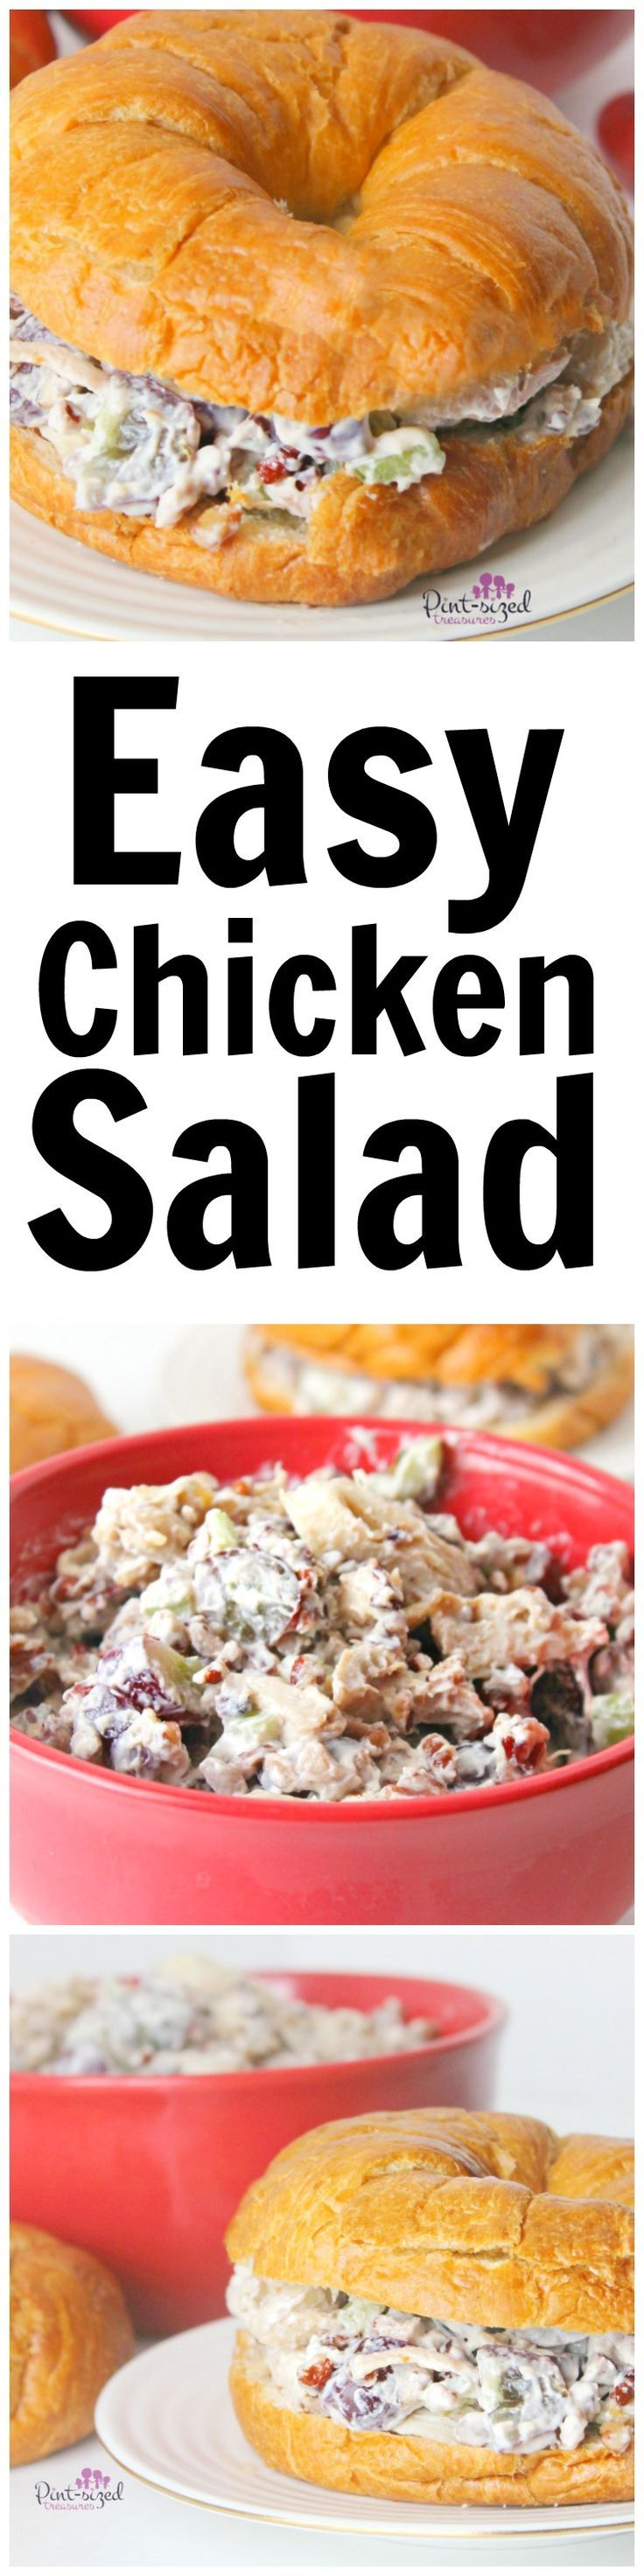 Ohhh yeaahhh! This easy chicken salad has the perfect blend of crunch, sweet and toasty! It's a perfect easy recipe to serve a large crowd or your family! Easy chicken salad is one of our family faves! try this chicken salad recipe that's tweaked to perfection. YUM!